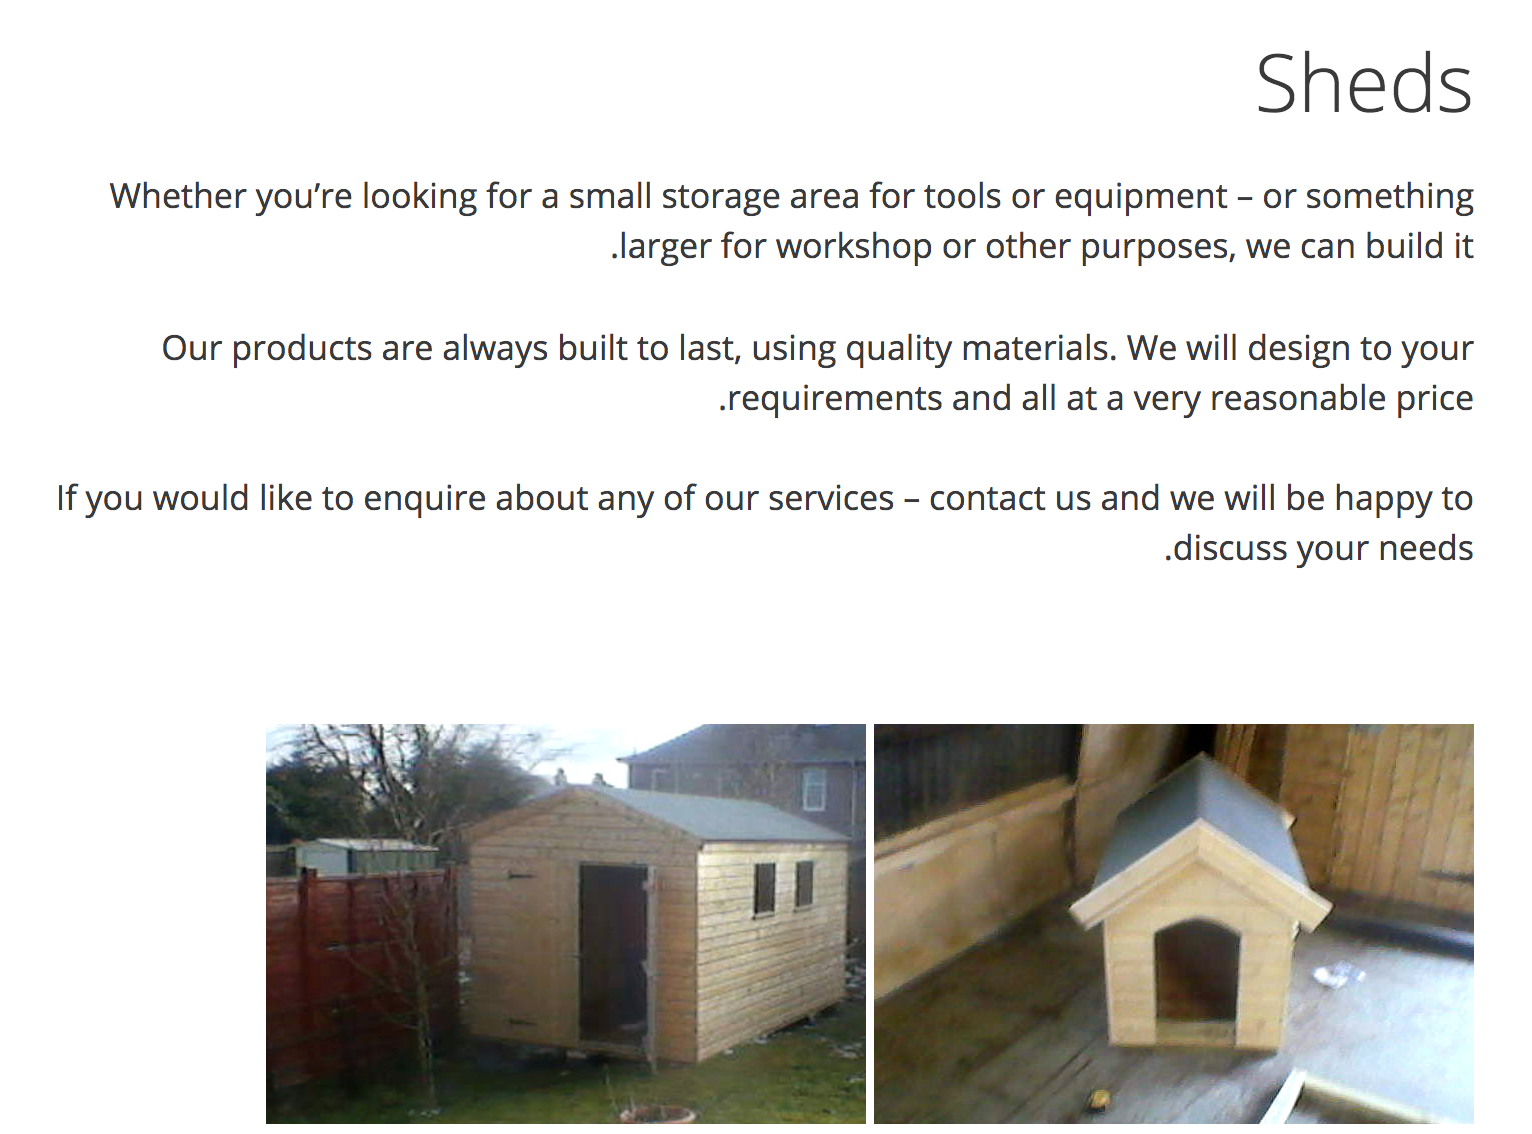 Garden sheds FIfe - Premier Sheds and Garages